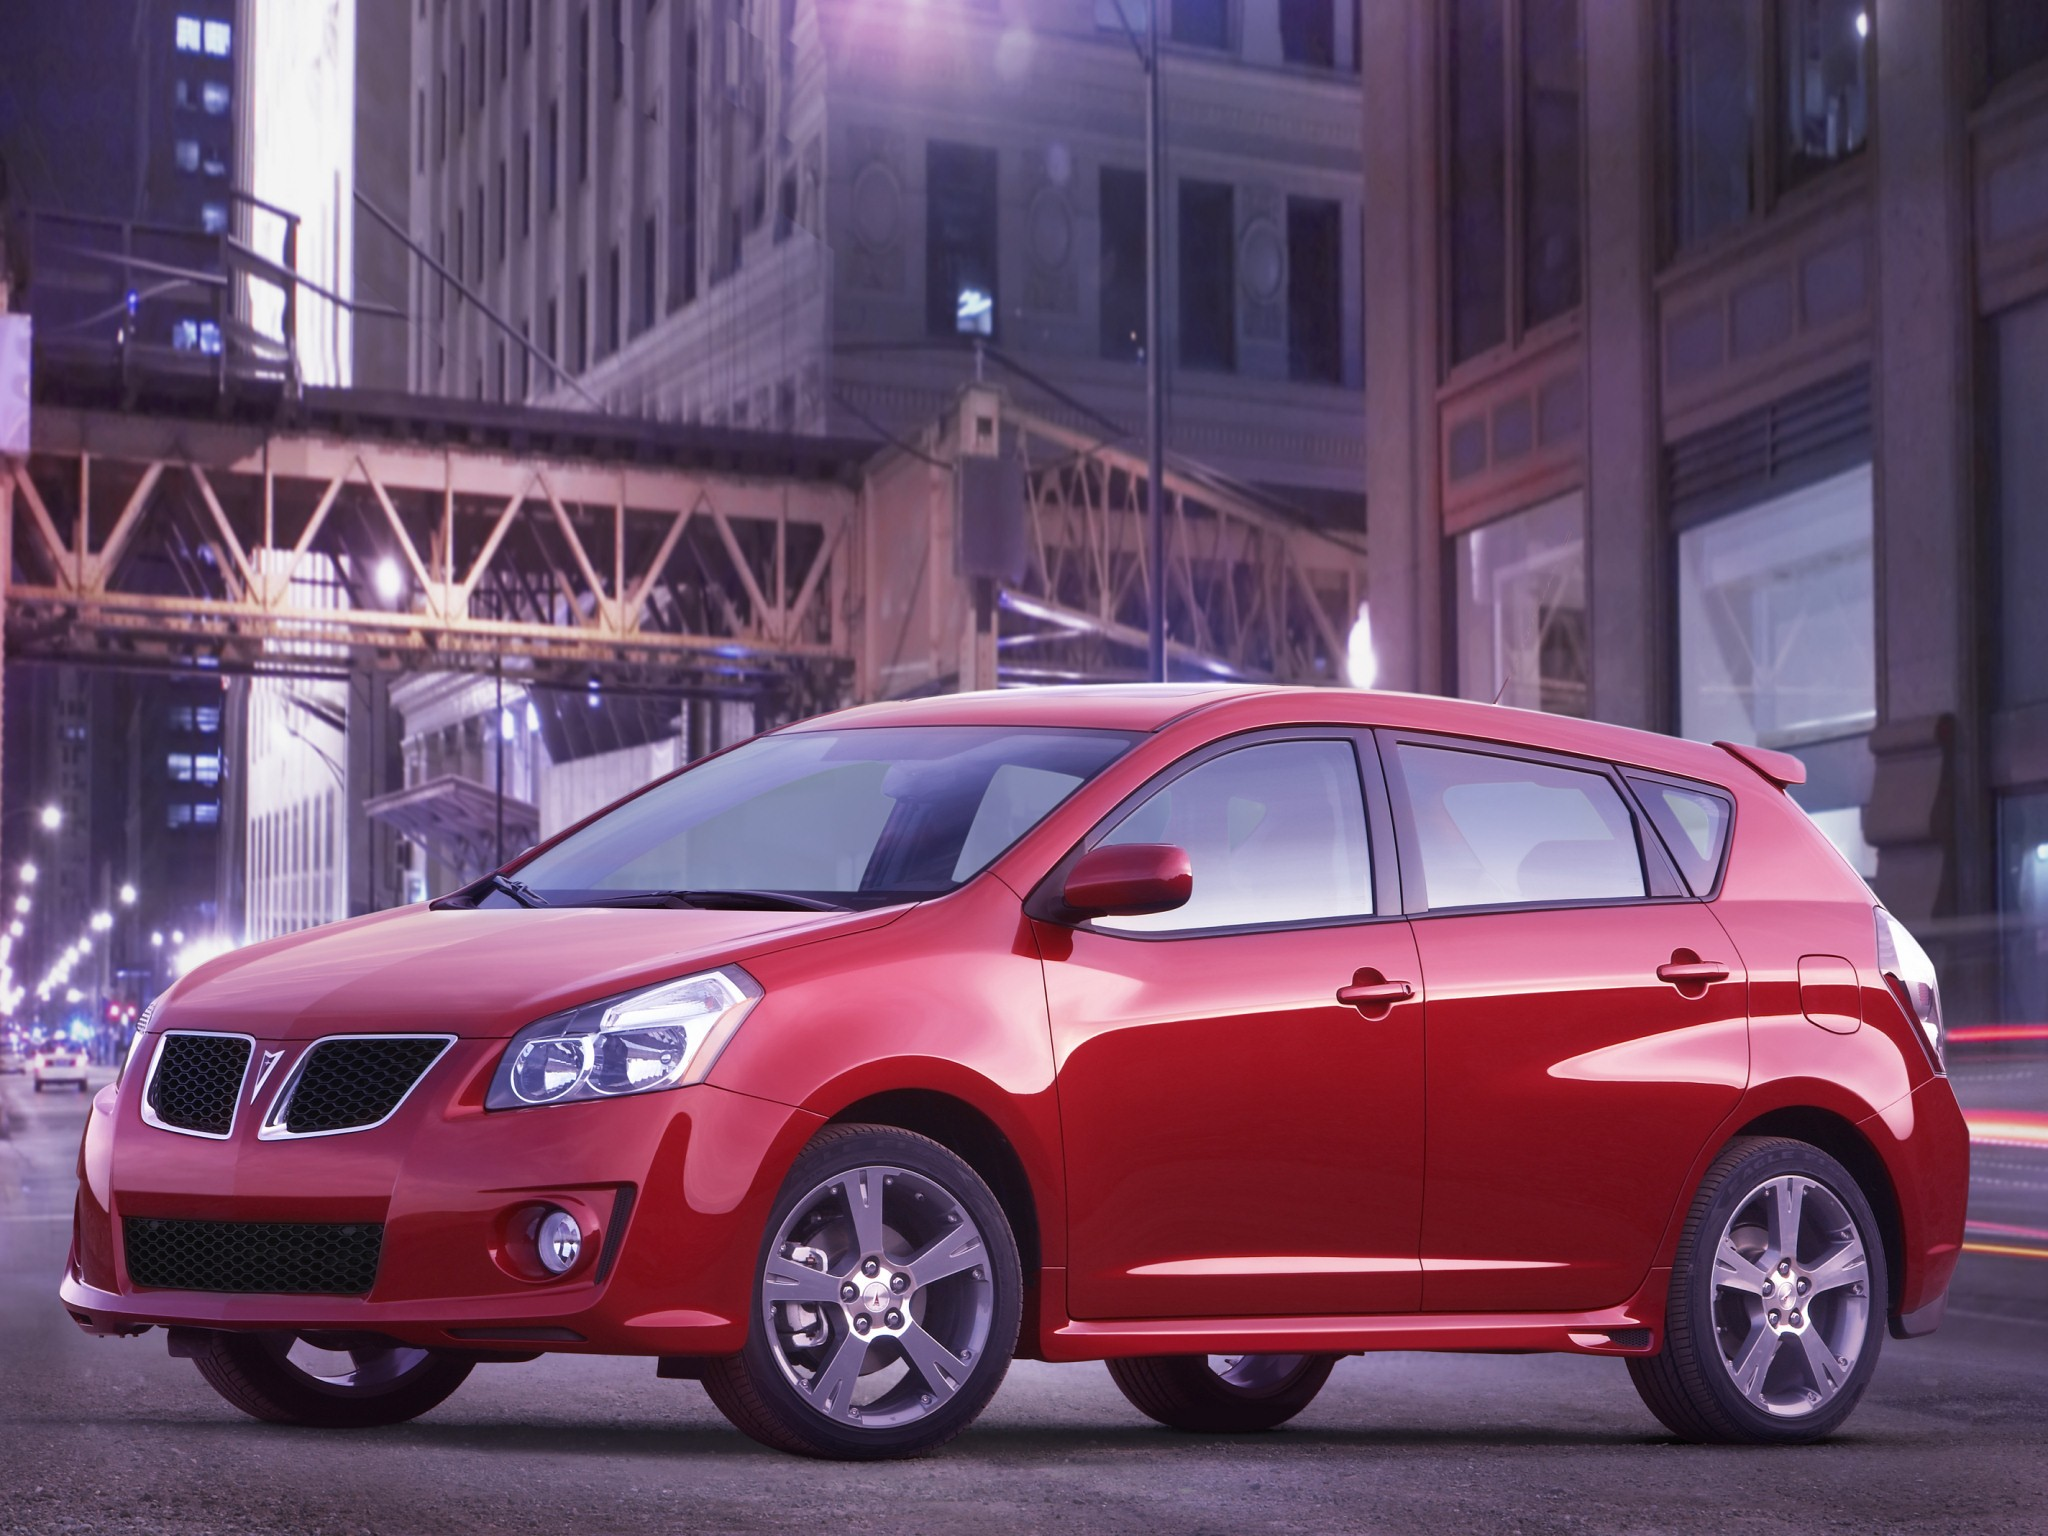 Large together with Large likewise Pontiac Emblem likewise Maxresdefault moreover X. on pontiac vibe